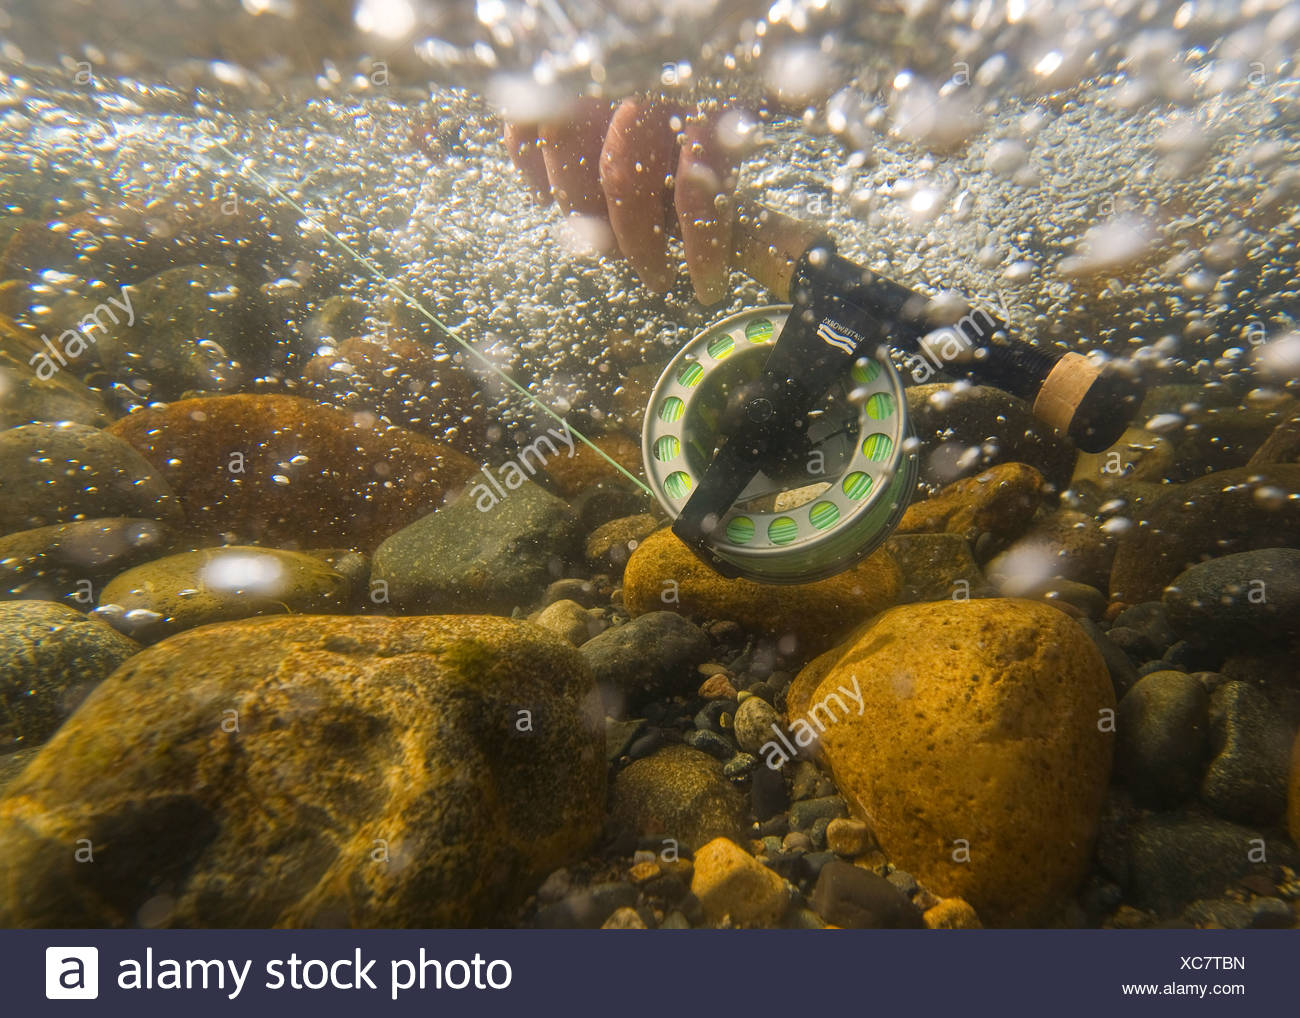 Underwater view of a fly rod and reel in the fast moving water of Montana Creek, Alaska - Stock Image